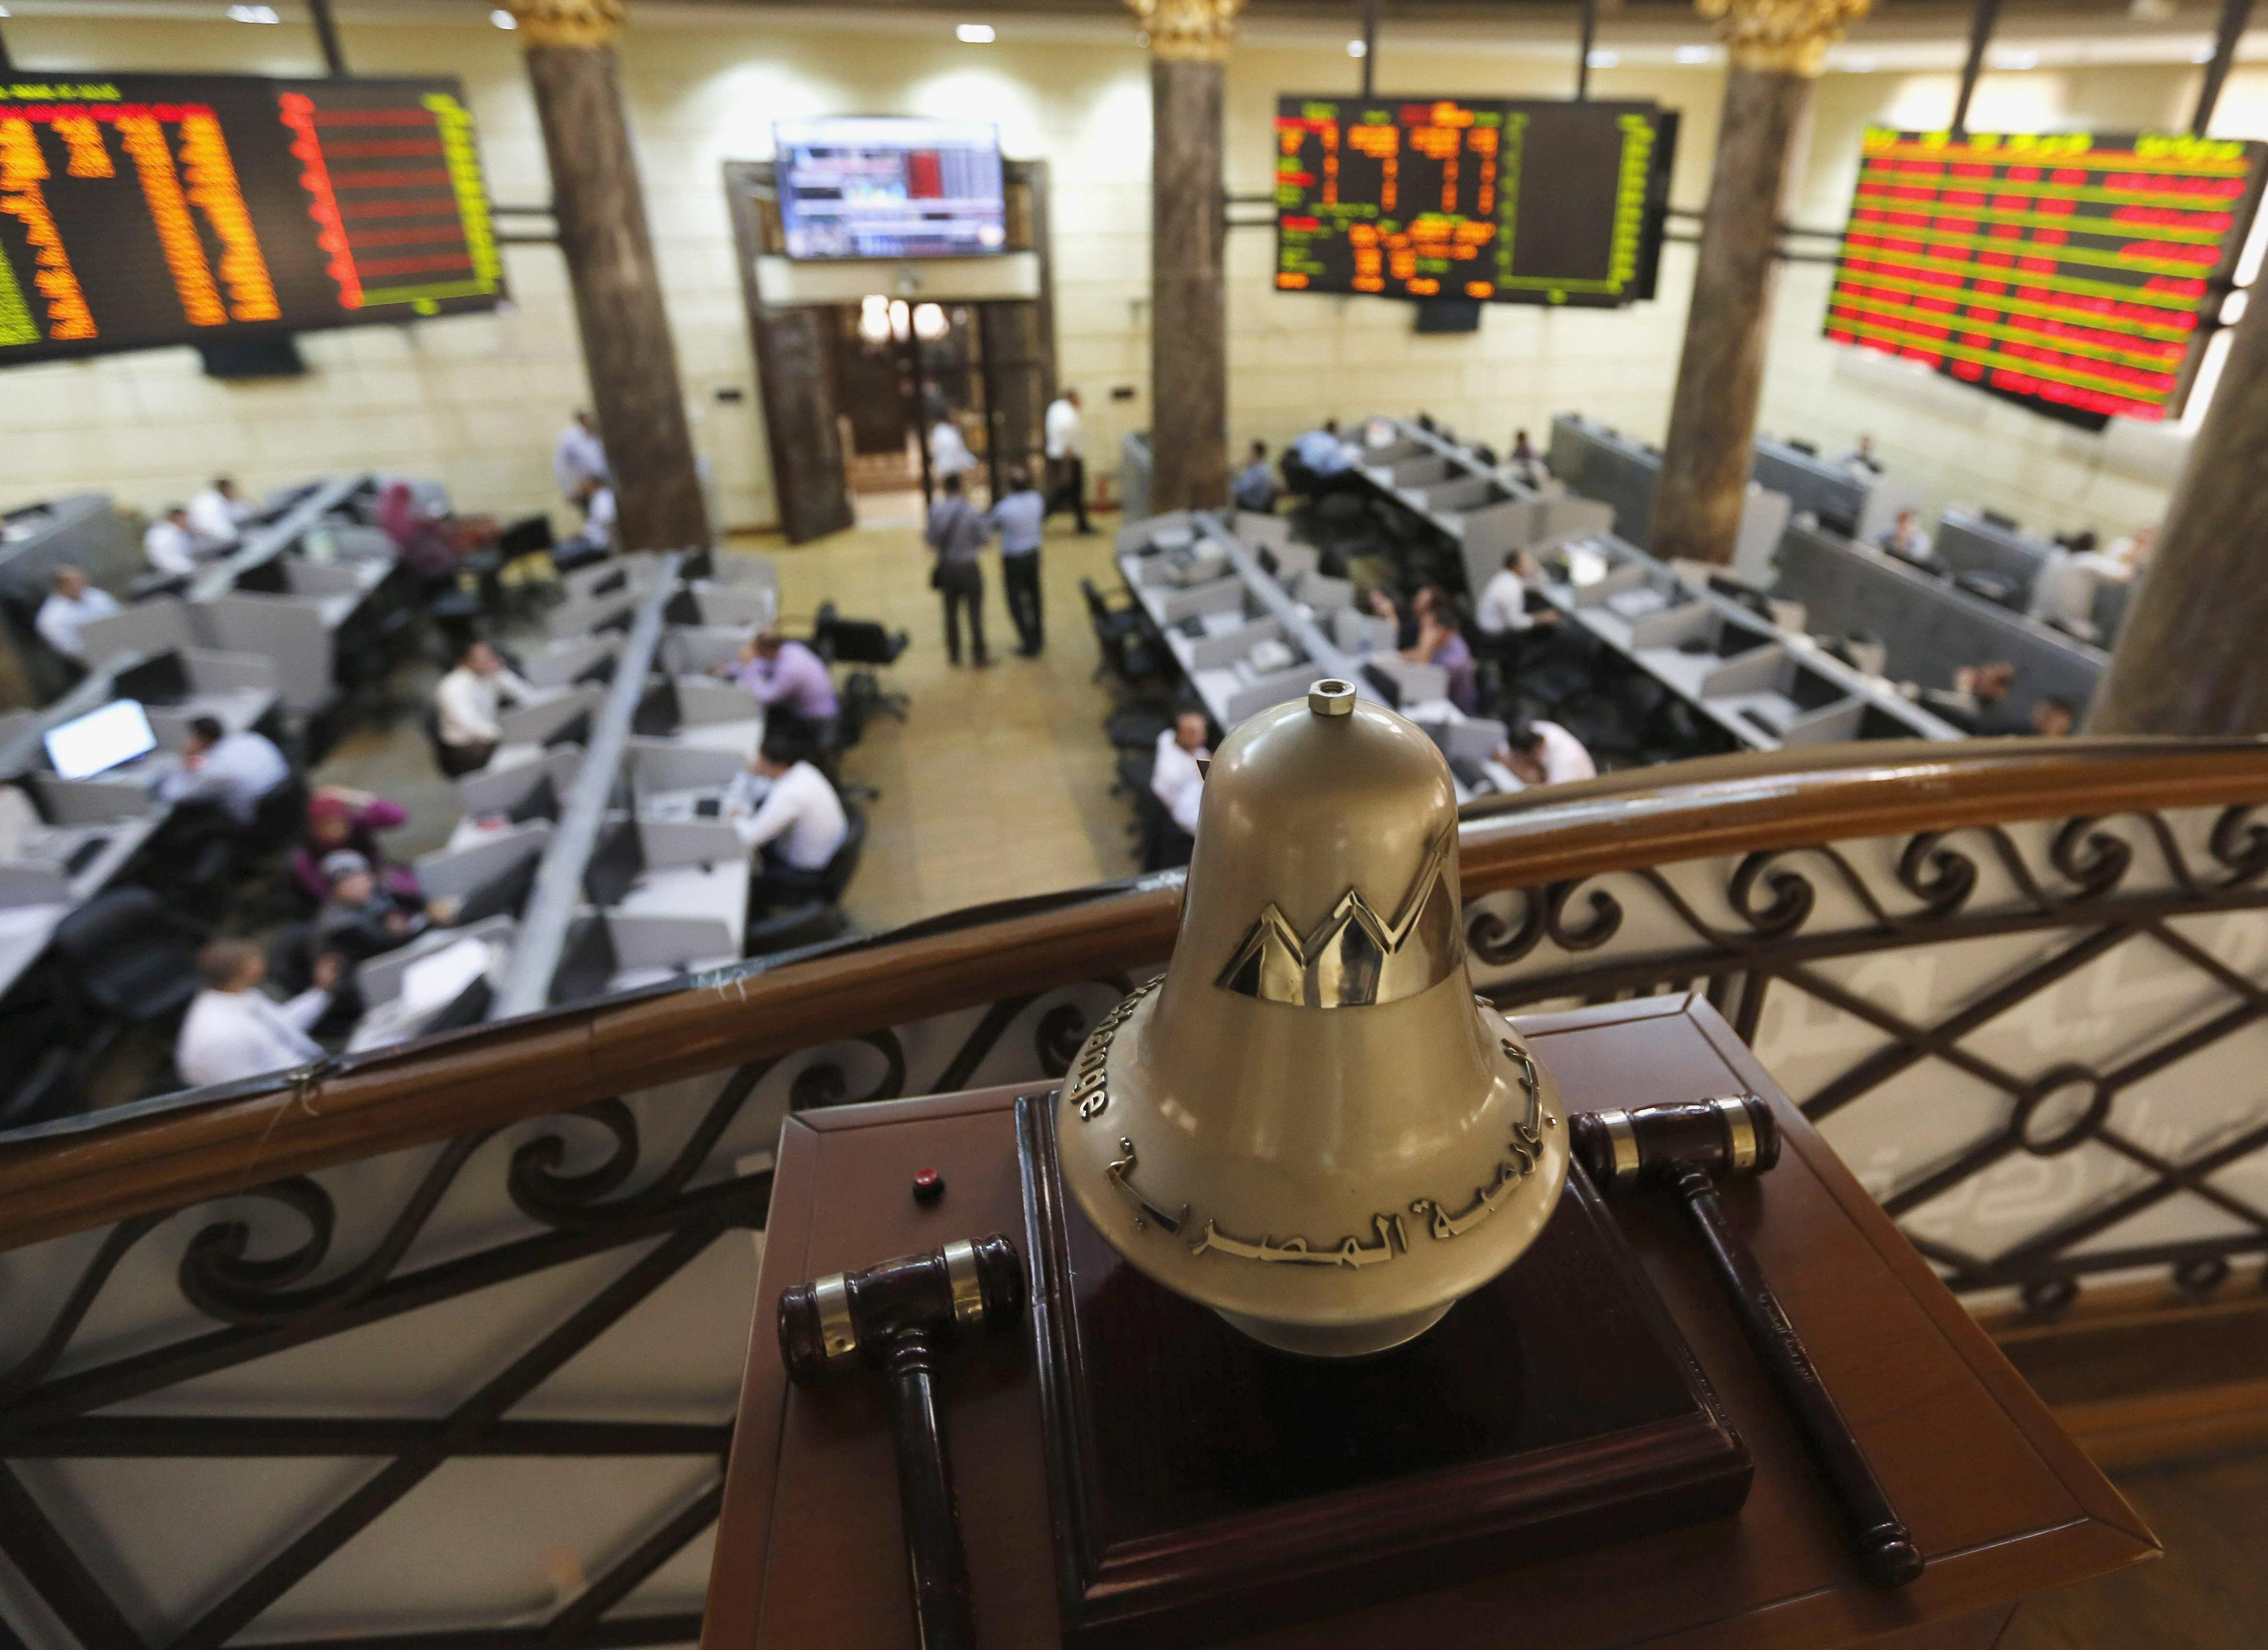 EGX loses over EGP 10bn due to panic selling in CIB shares - Daily News Egypt